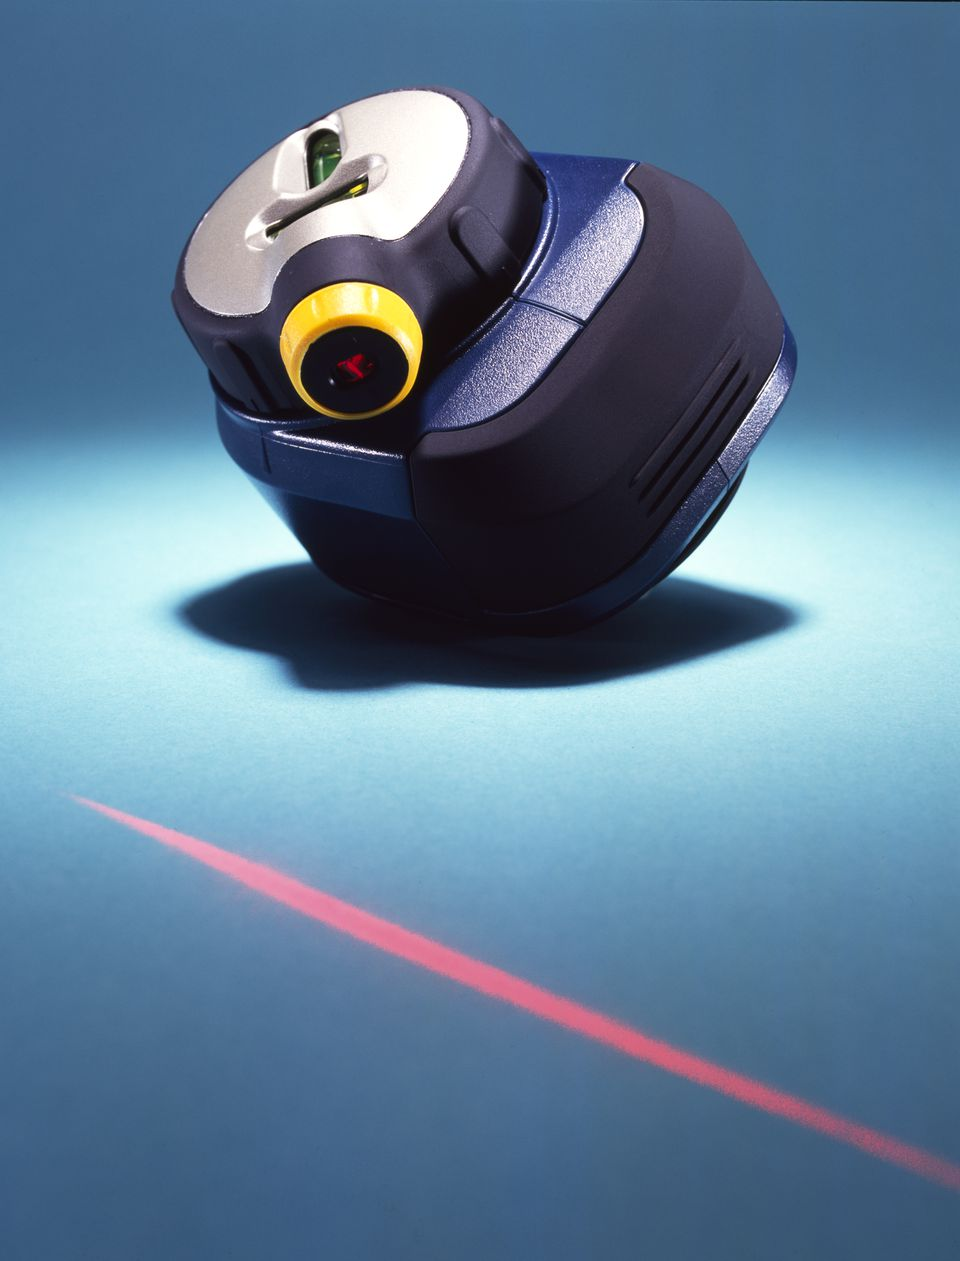 Laser level tool